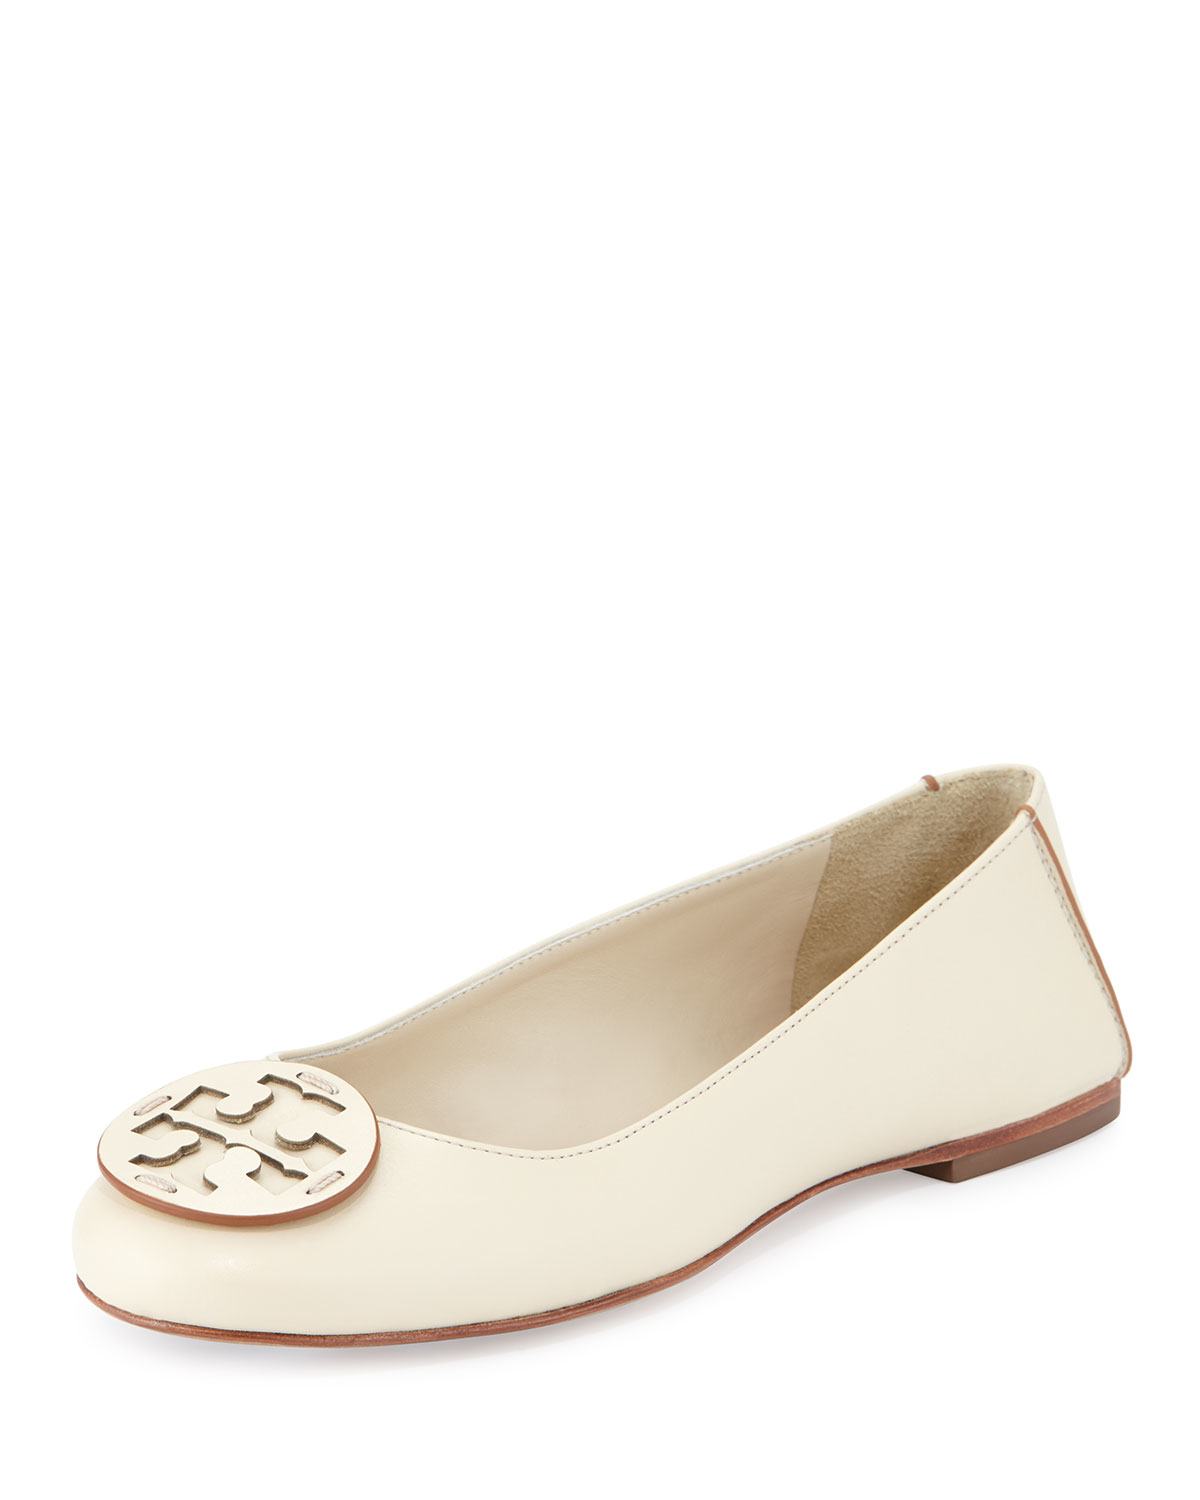 c4ab3b6d231091 Gallery. Previously sold at  Neiman Marcus · Women s Tory Burch Reva  Women s Ancient Greek Sandals ...